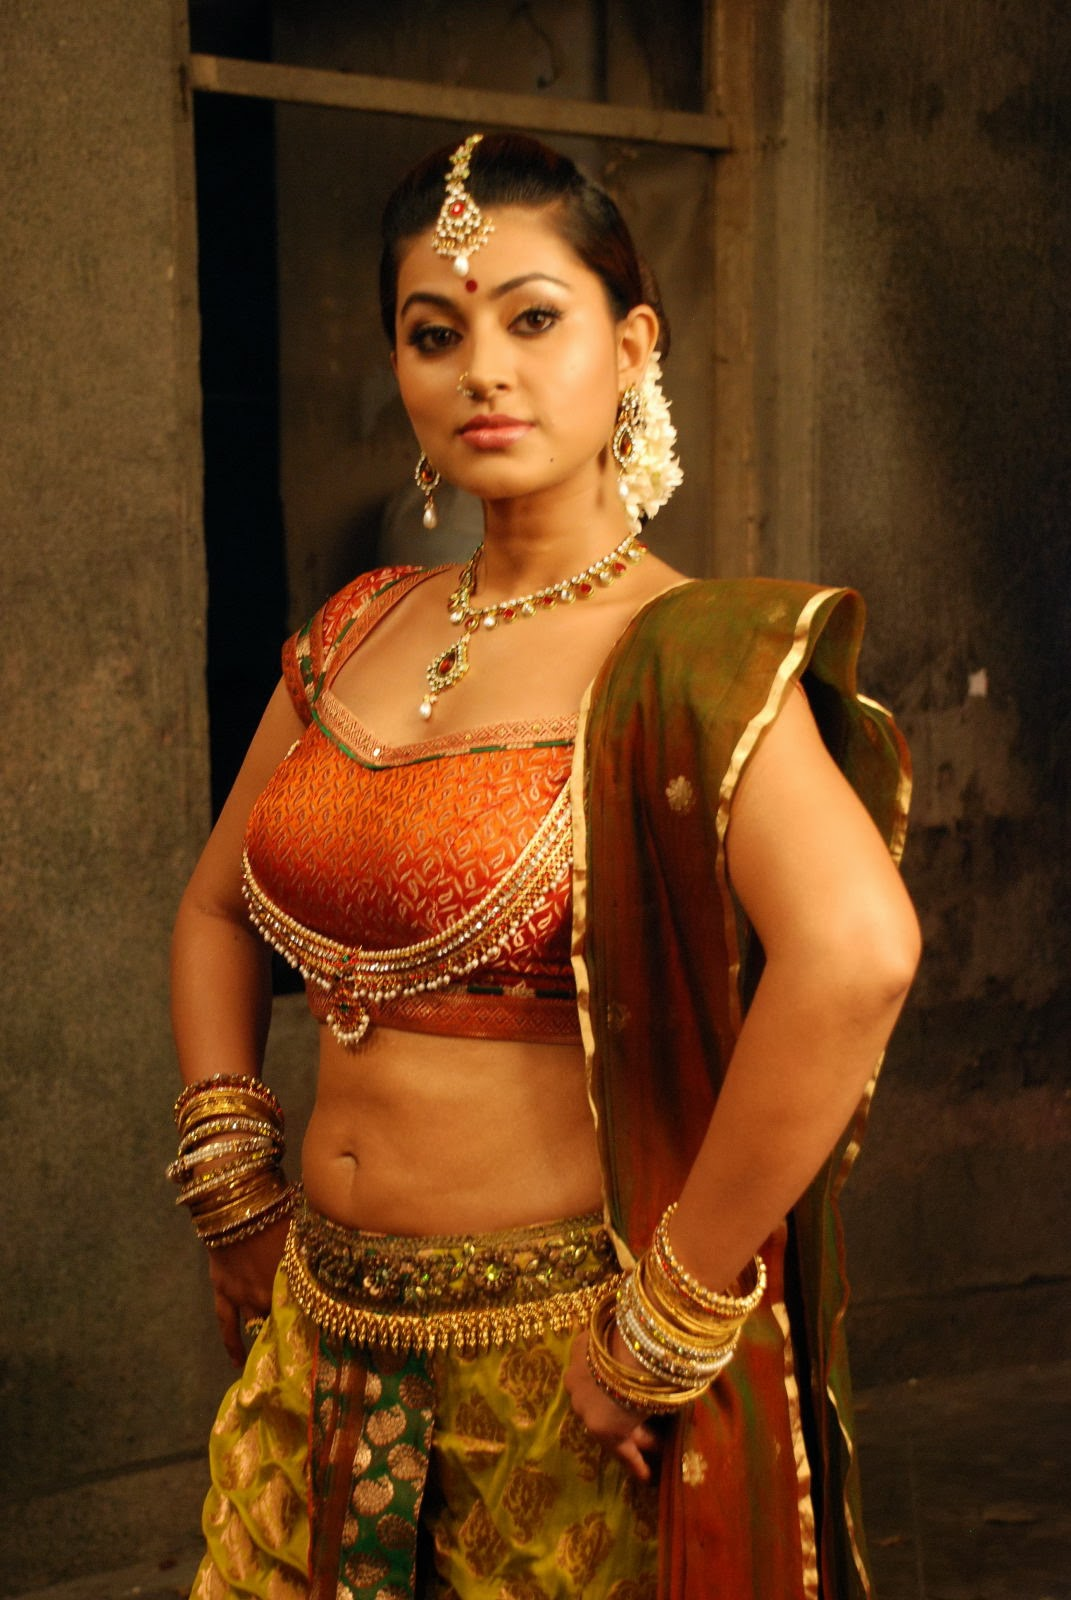 Tamil Actress Sneha Gallery stills HD Hot images , photos and wallpapers